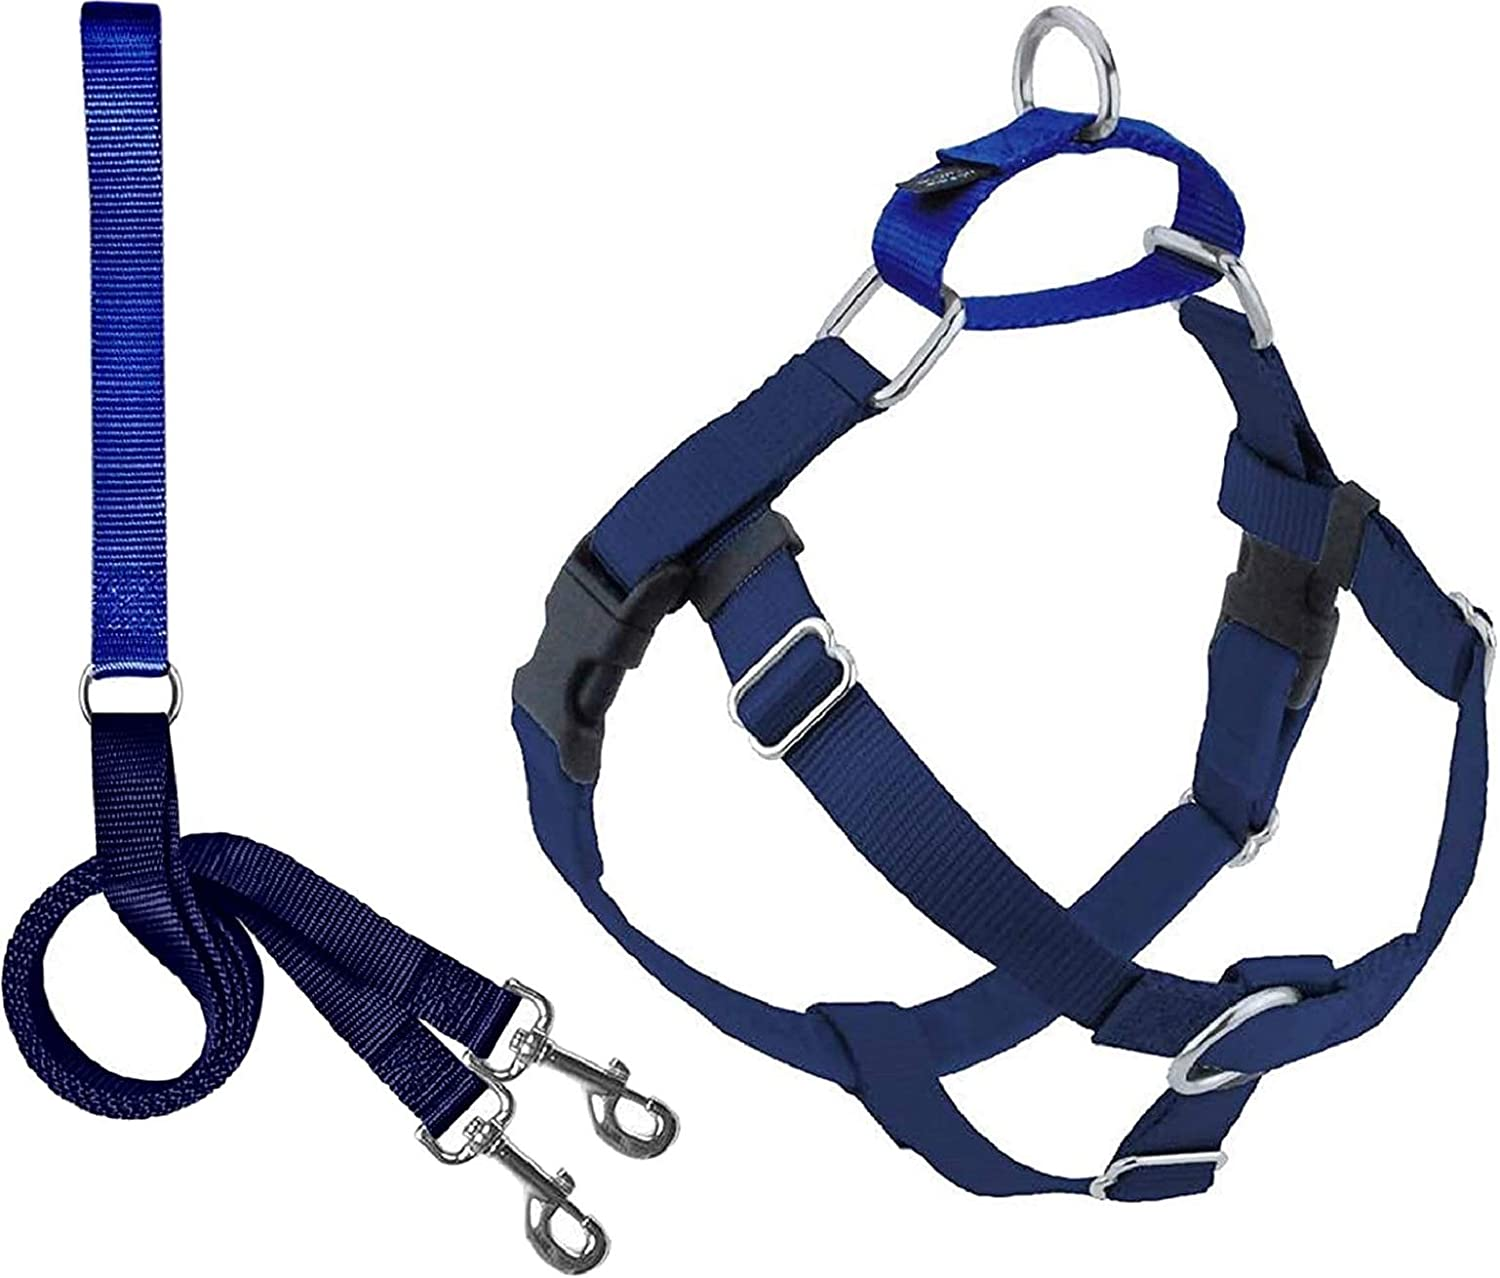 2 Directly managed store Hounds Design Freedom No Harness Dog Pull Adjustable Gentle Very popular